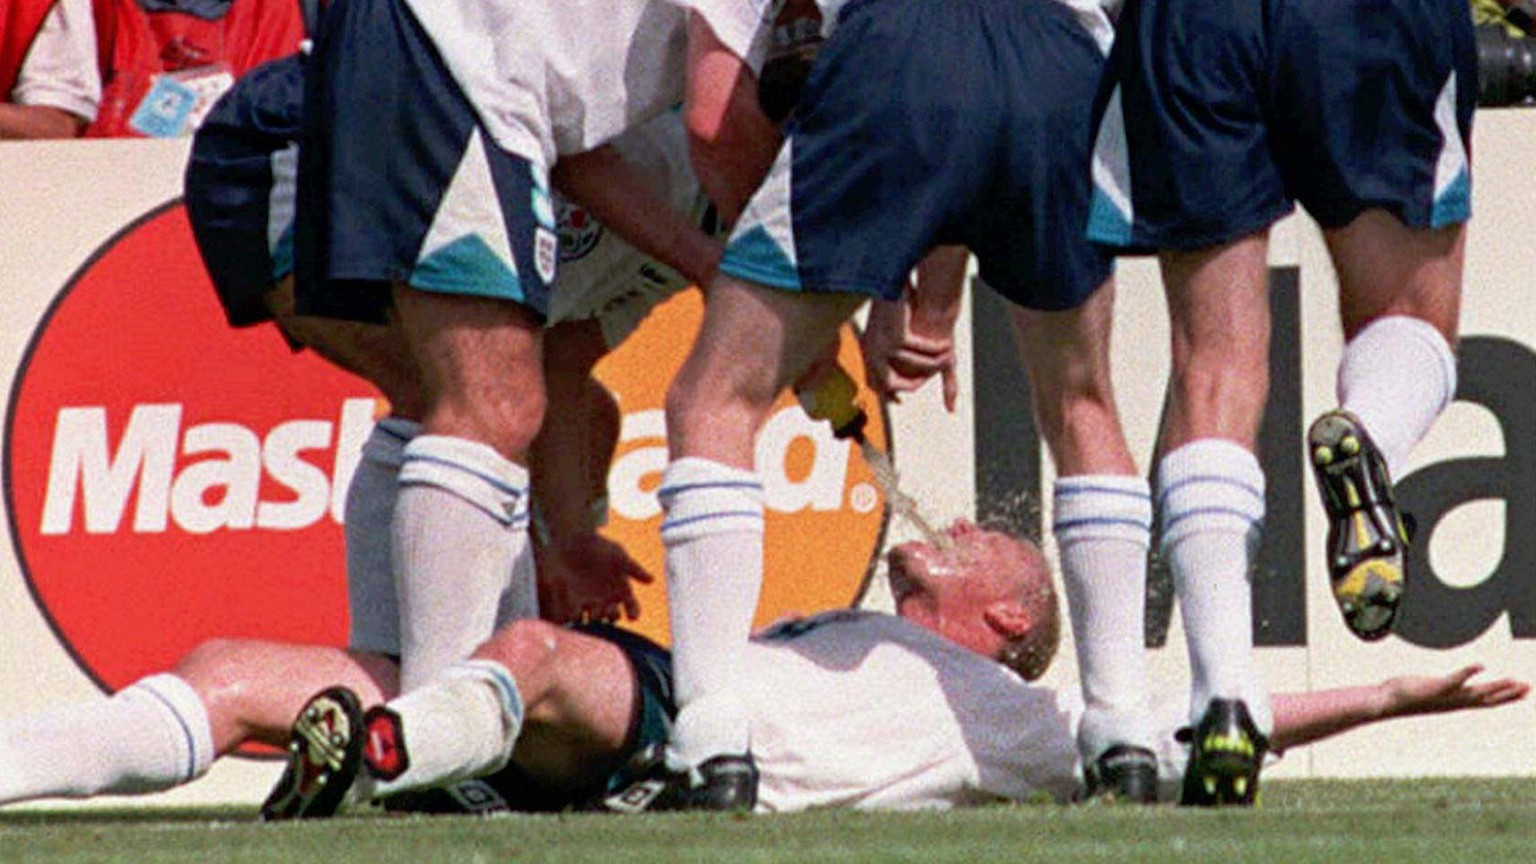 Paul Gascoigne is swamped by England teammates after scoring their second goal during their Euro 96 clash against Scotland, at Wembley, Saturday June 15 1996. England won 2-0. (AP Photo/Adam Butler)